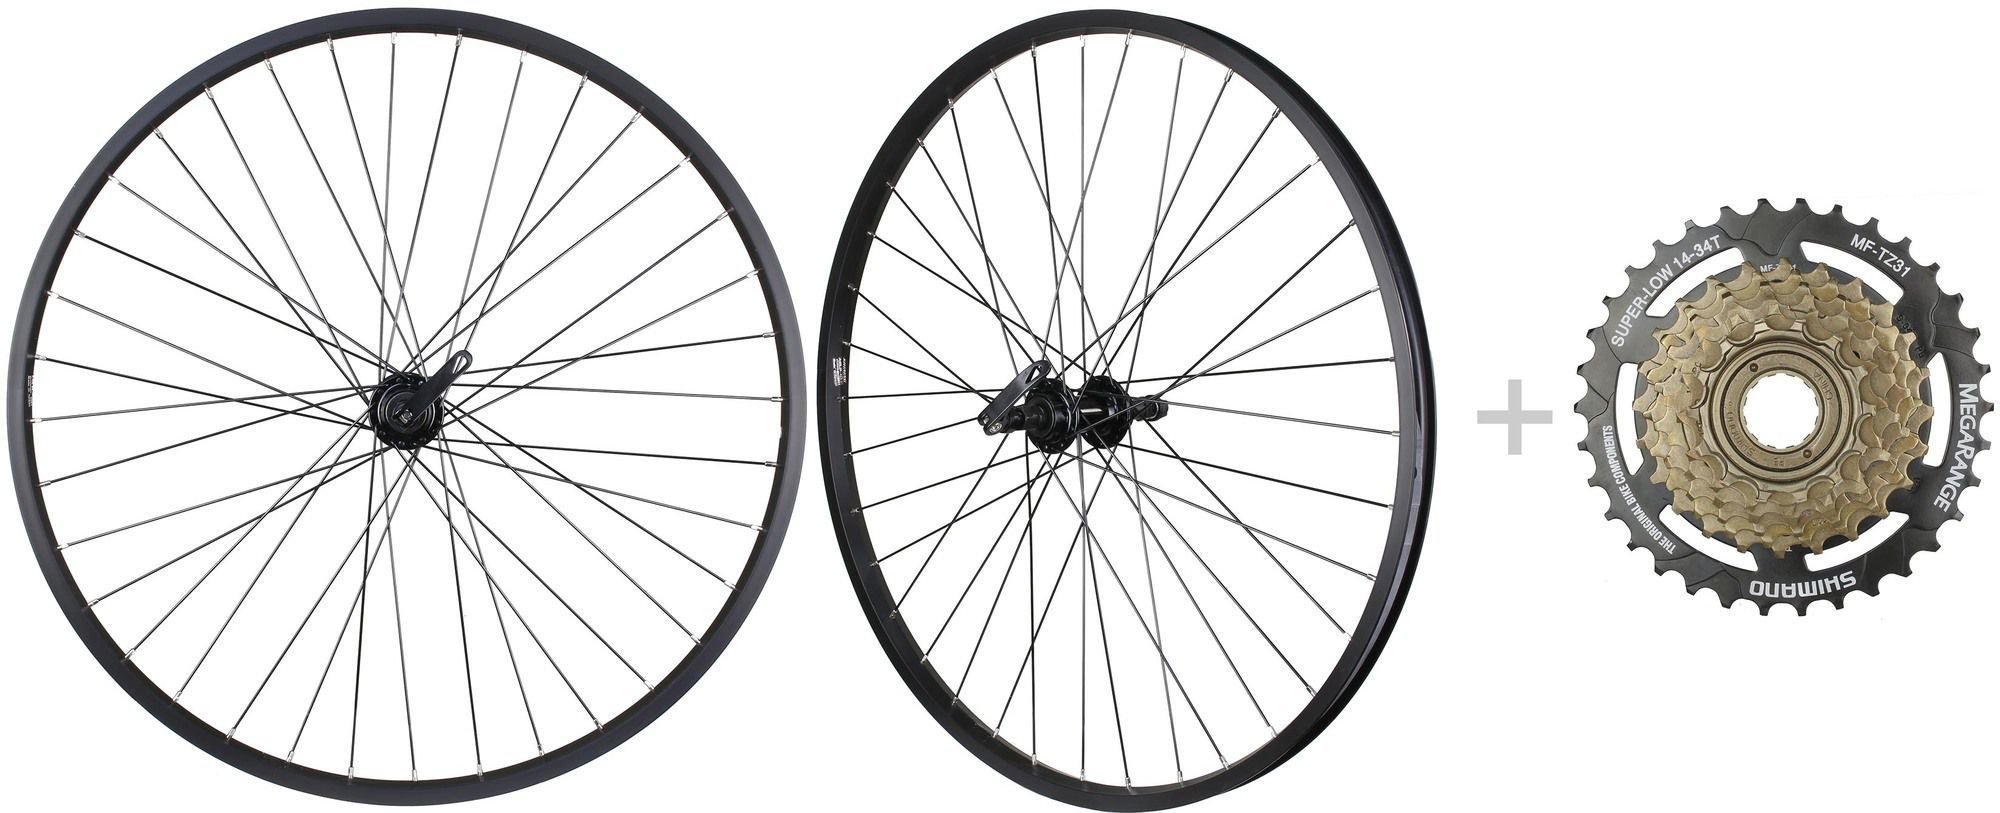 CyclingDeal Bike Bicycle MTB Wheelset 26'' 7 Speed with Shimano MF-TZ31 14-34T Freewheel